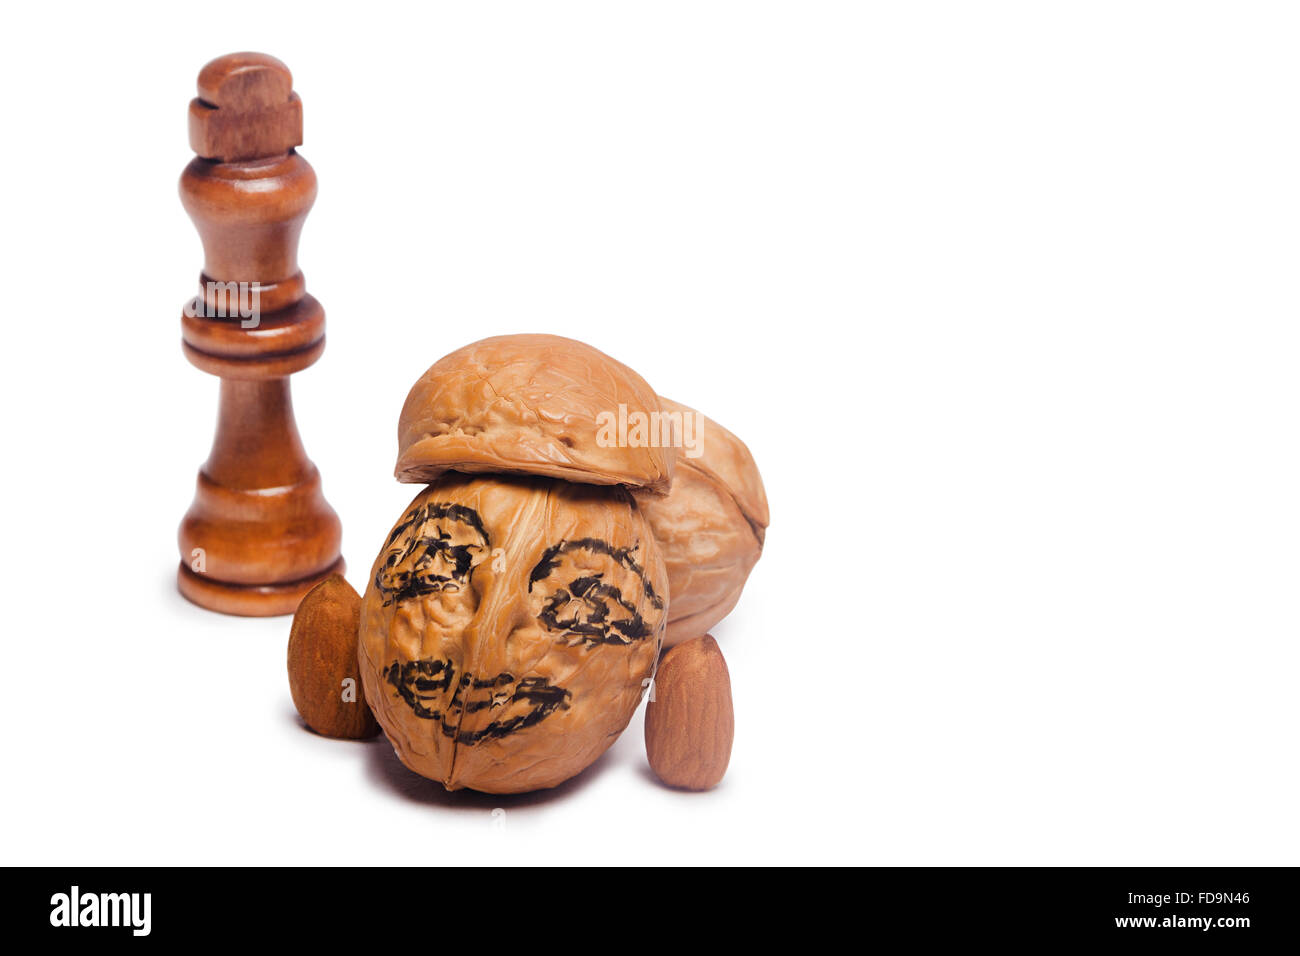 Walnut Drawing Face Human representation and Chess Nobody - Stock Image